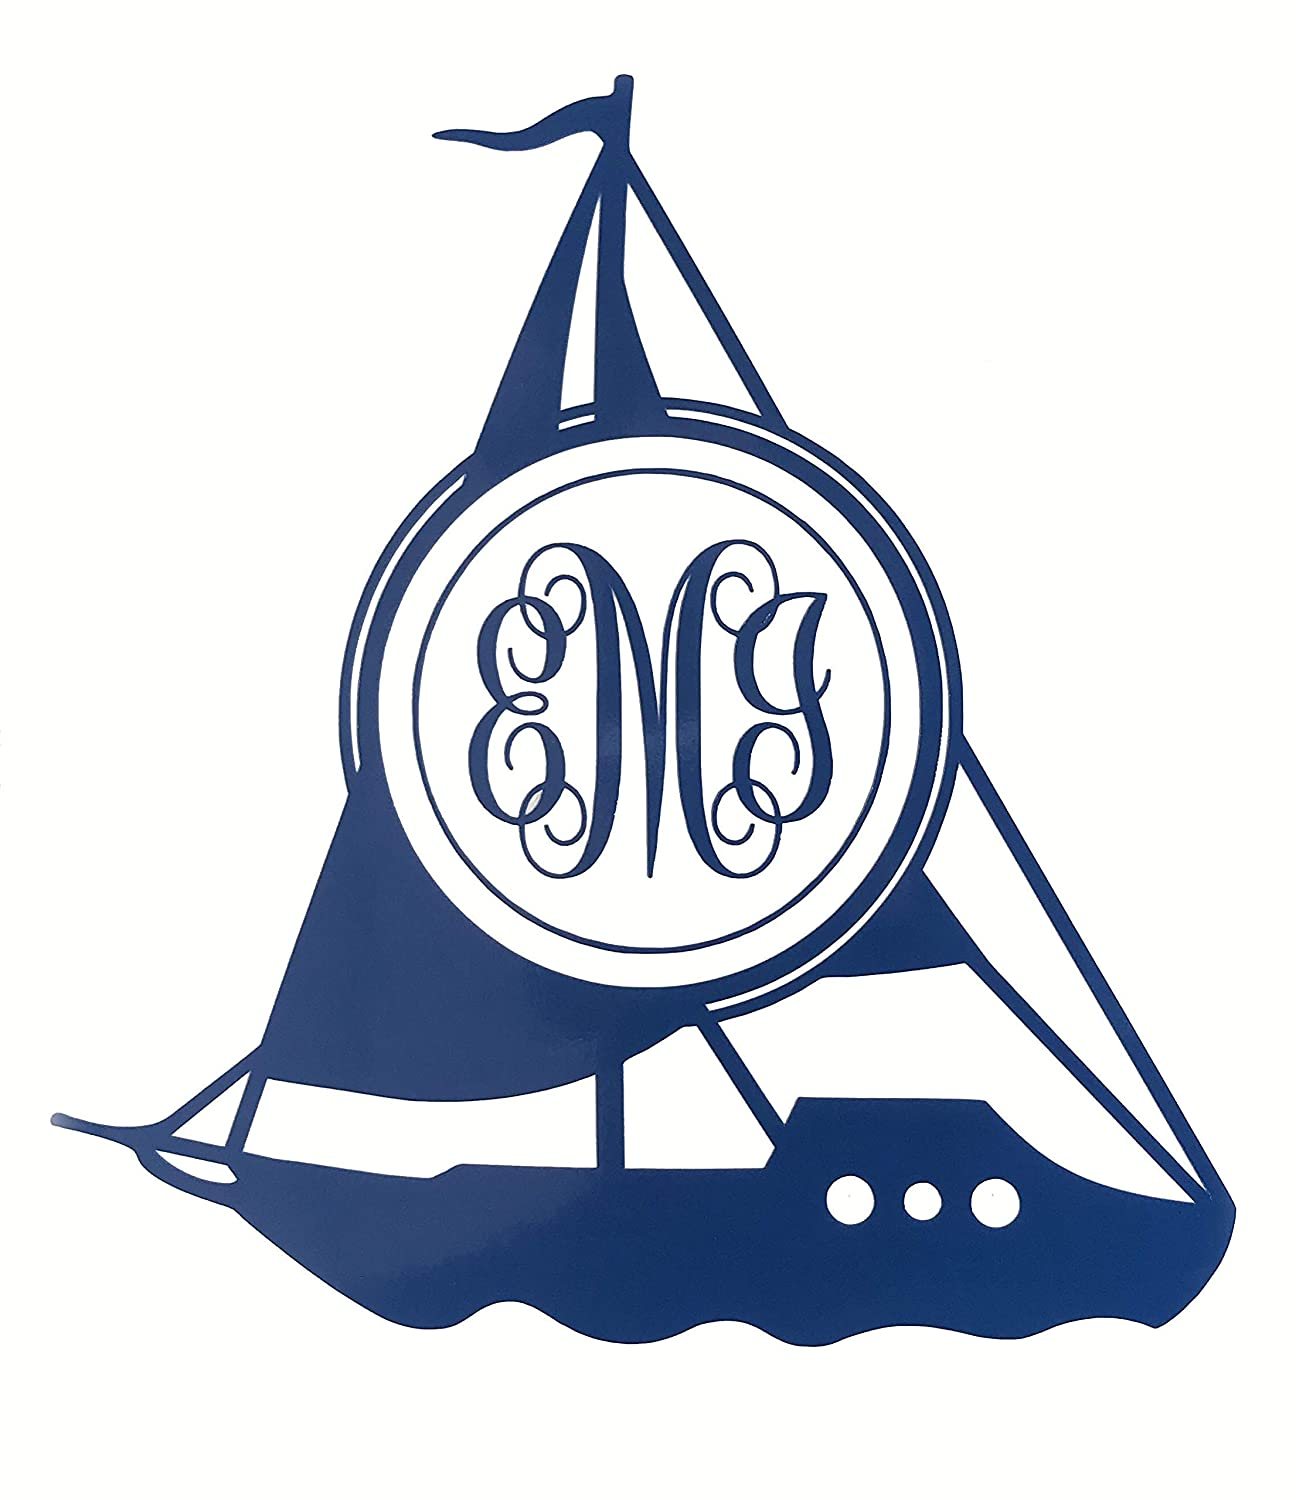 WickedGoodz Custom Sailboat Monogram Vinyl Decal - Personalized Initial Sticker, for Coolers, Boats, Laptops, Car Windows - Boat Gift